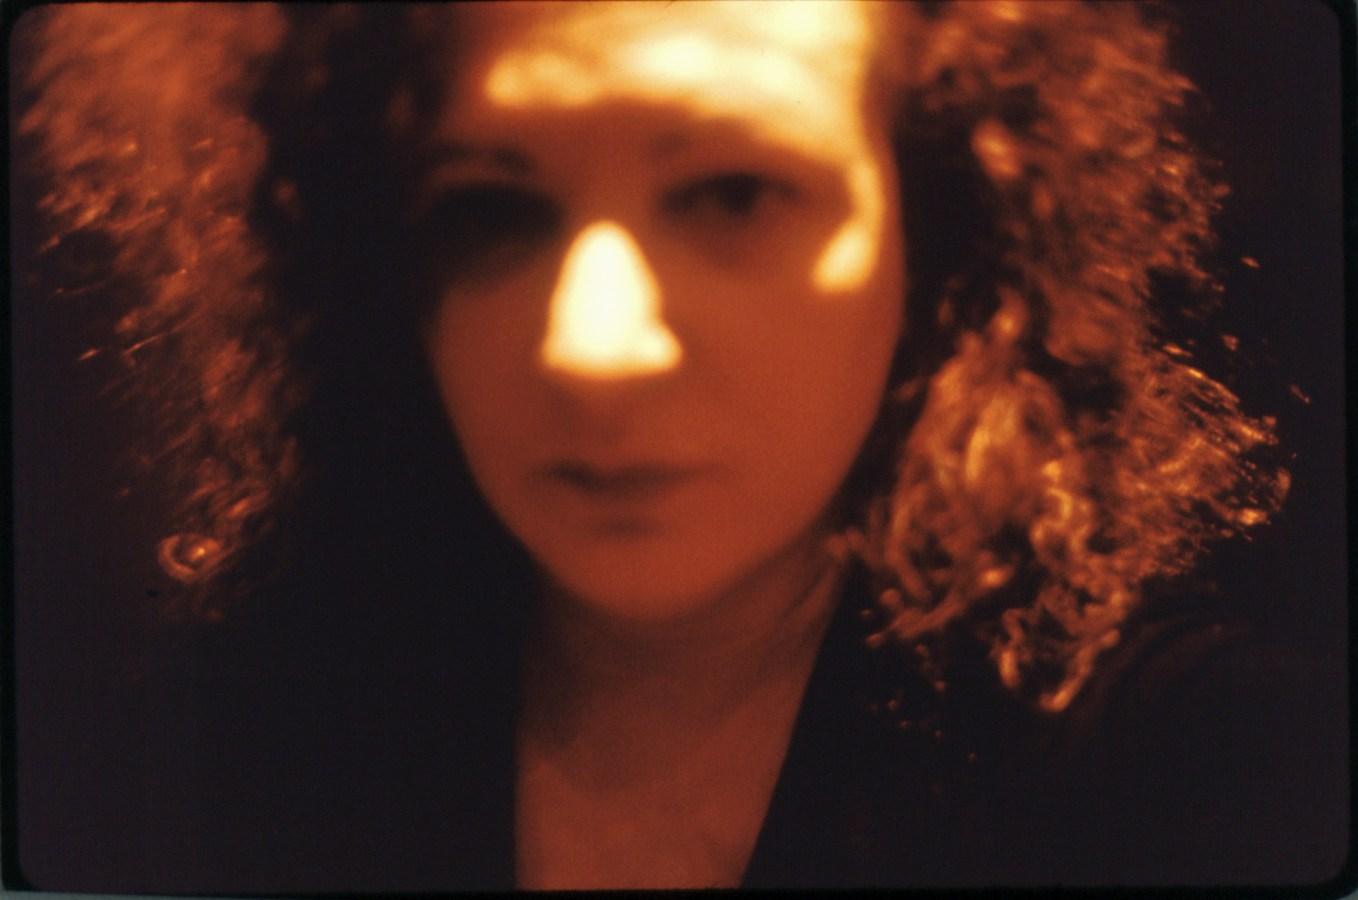 Color photograph of an out-of-focus woman's face framed by frizzy hair under orange light